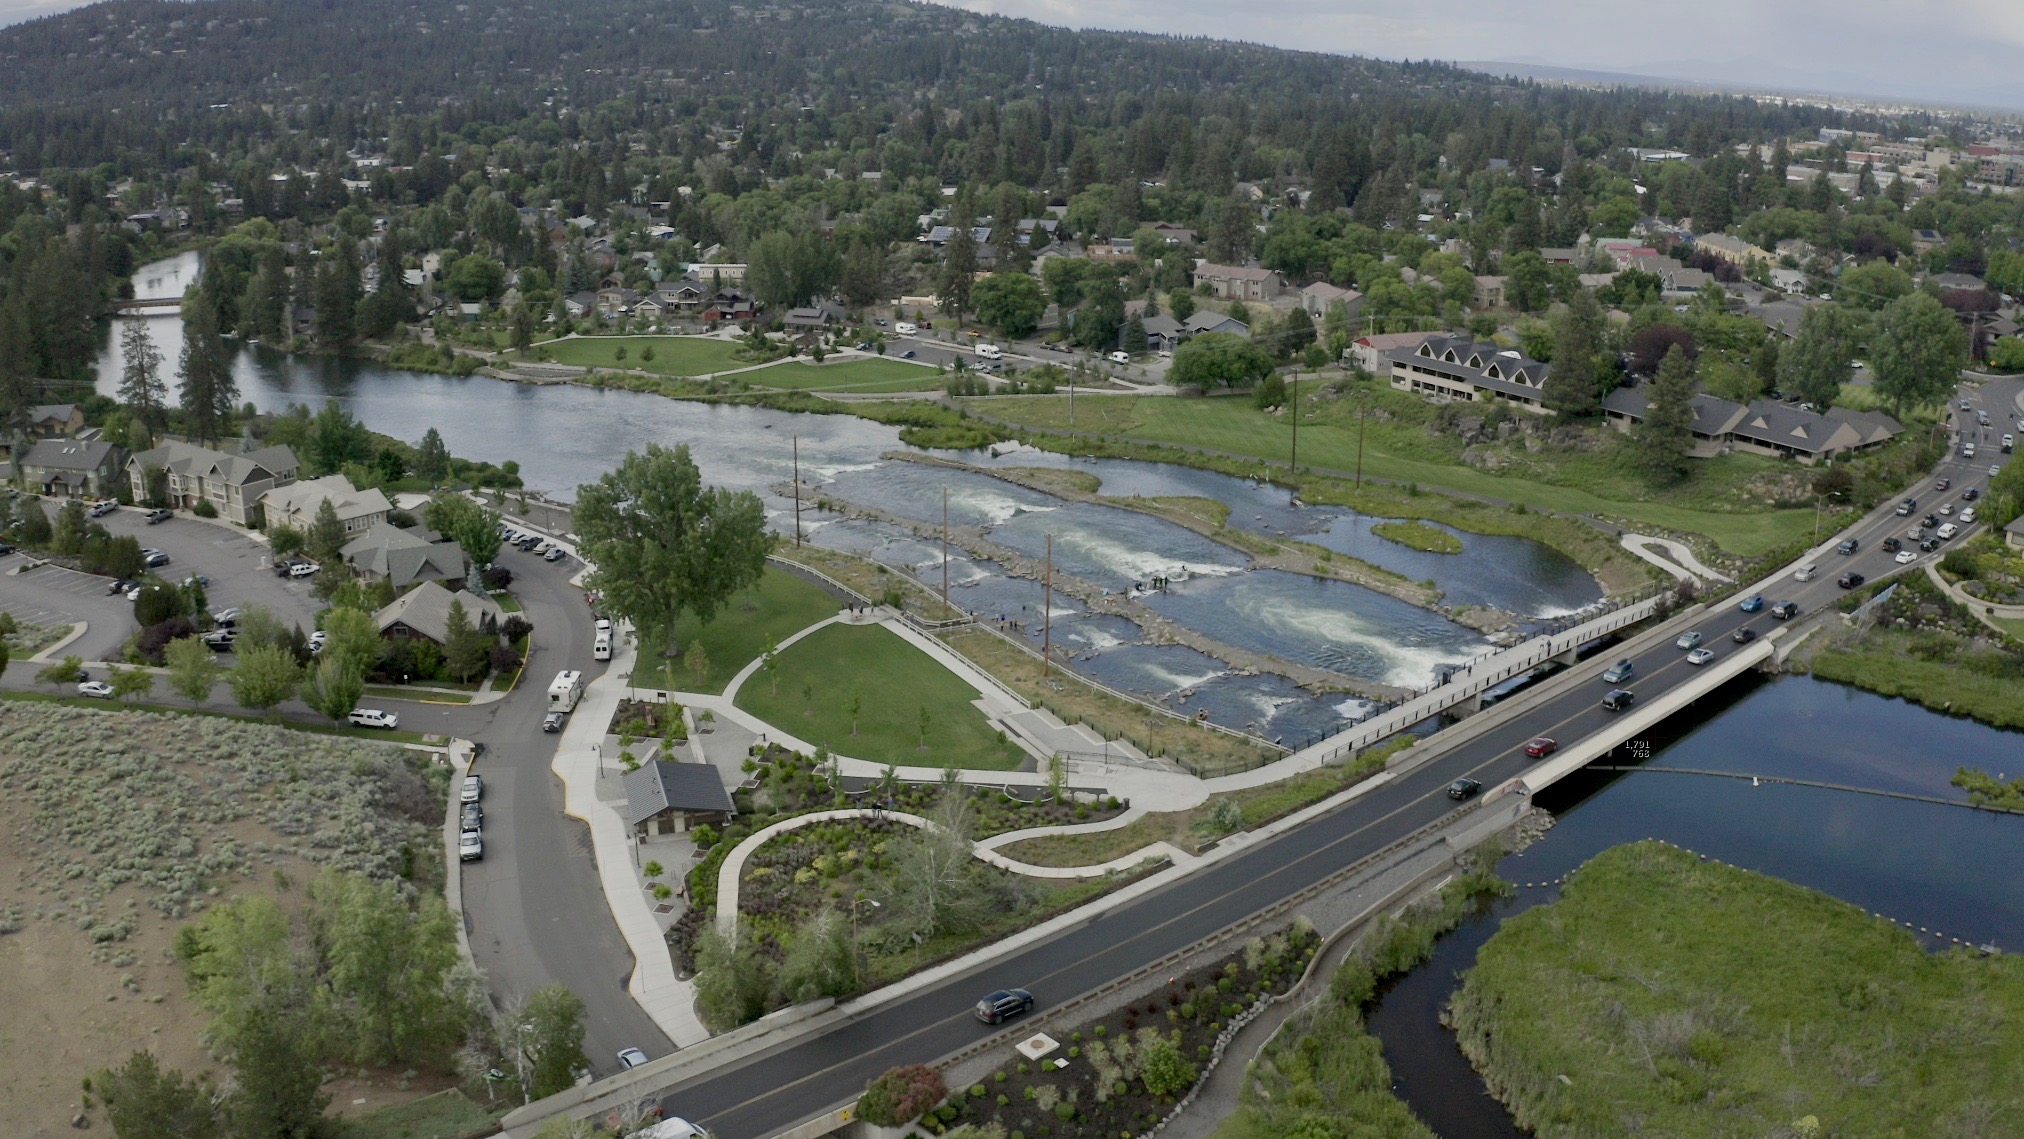 Bend Whitewater Park - Bend Park and Recreation District